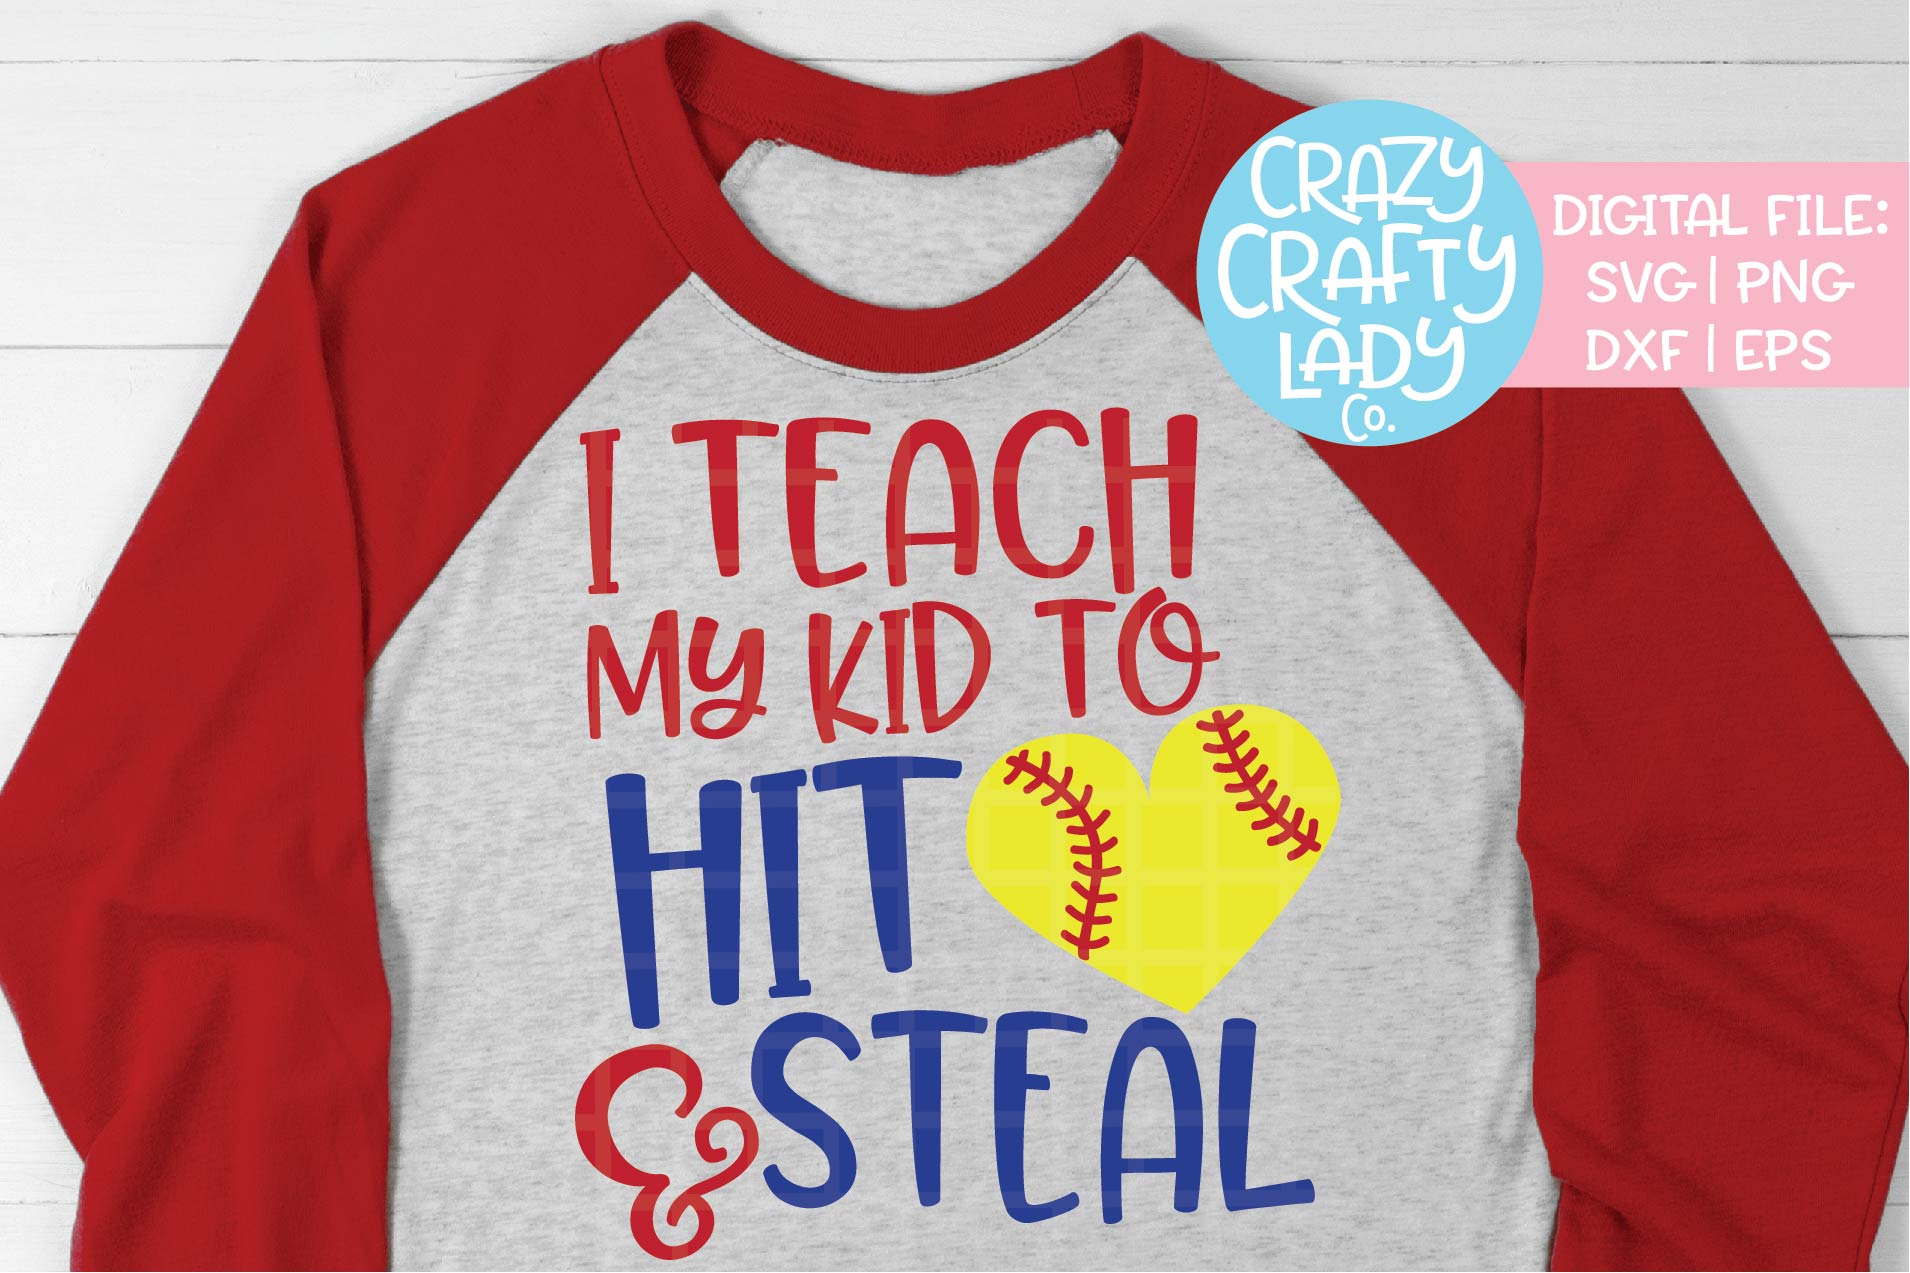 I Teach My Kid to Hit & Steal SVG DXF EPS PNG Cut File example image 1